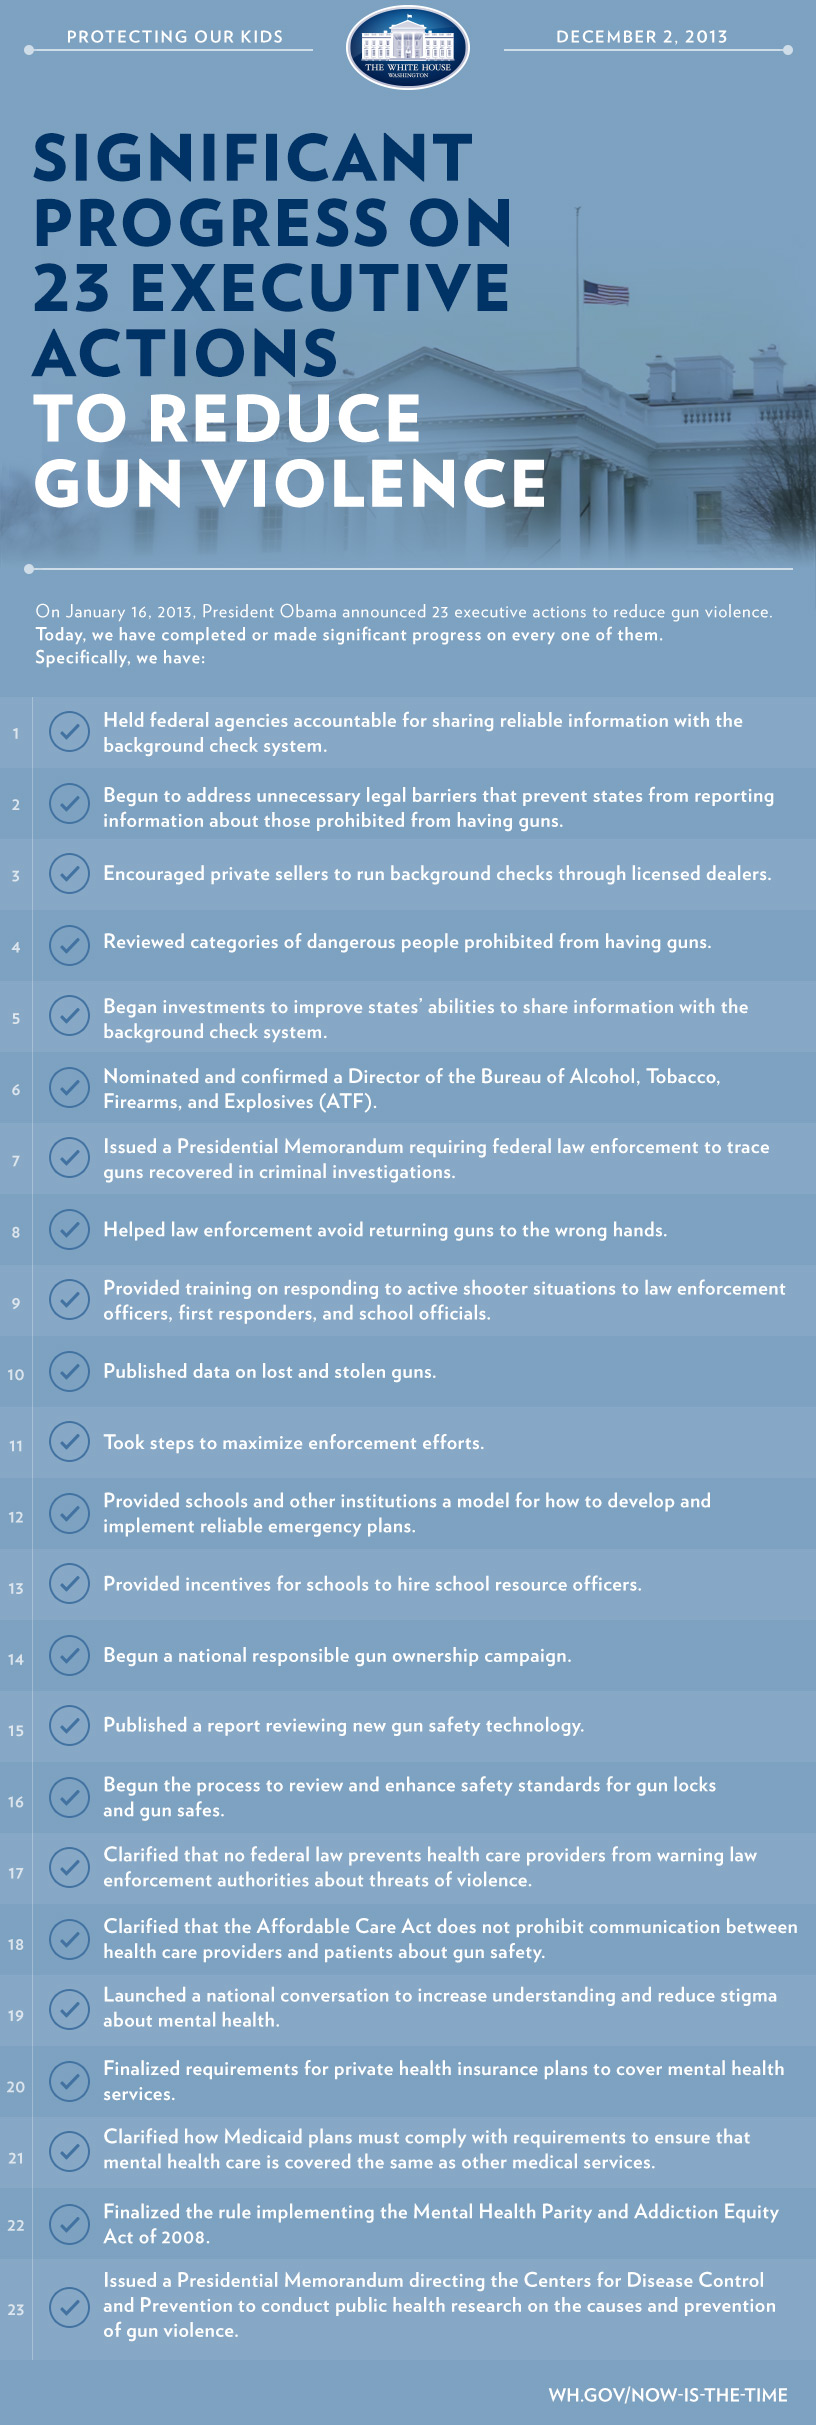 We've made significant progress on 23 Executive Actions to reduce gun violence.